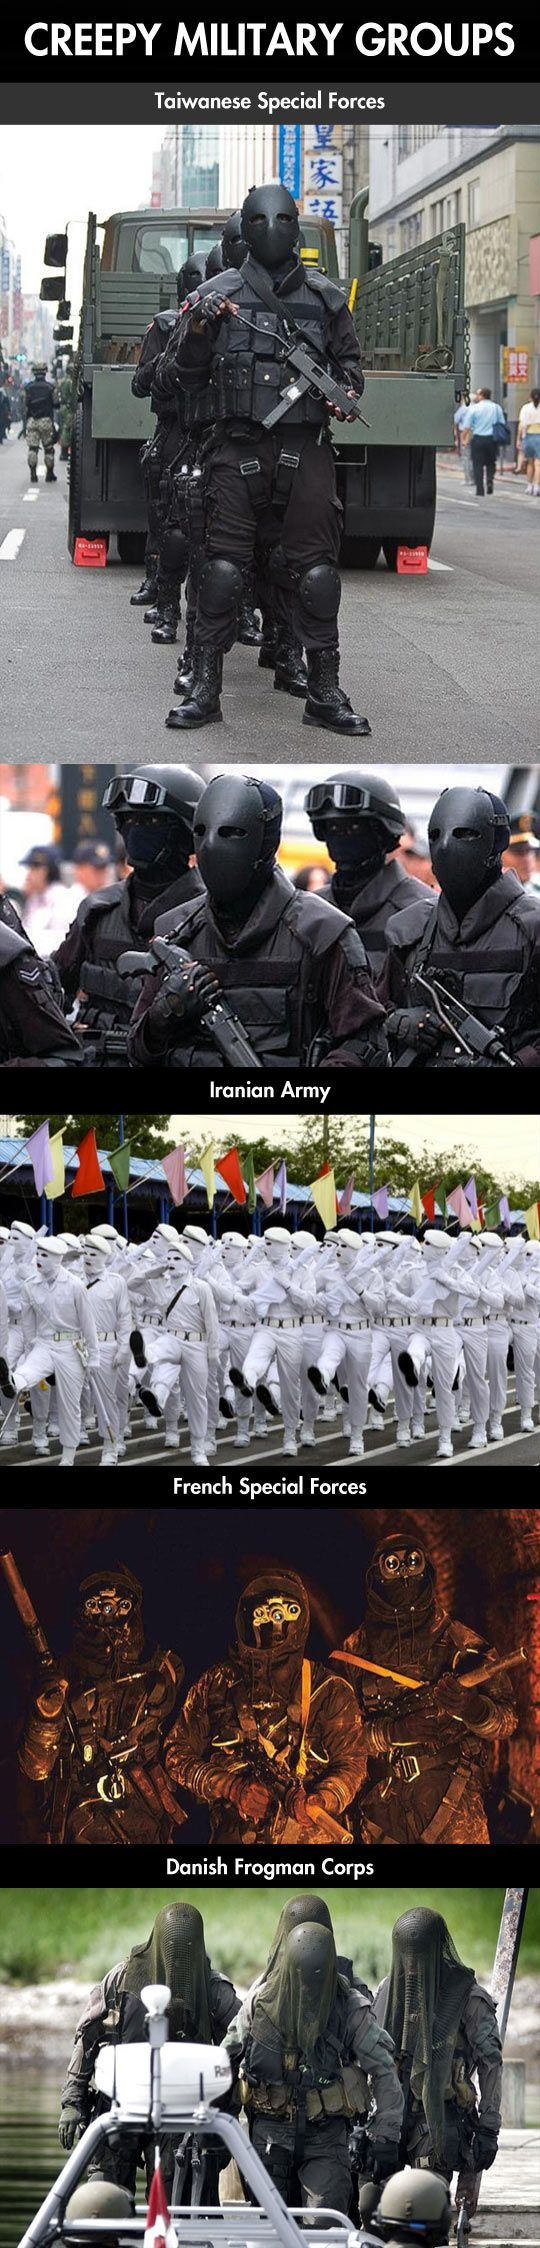 Creepiest military forces around the world… :: Um, the guys in white reminded me of mimes who had lost their minds. Odd....